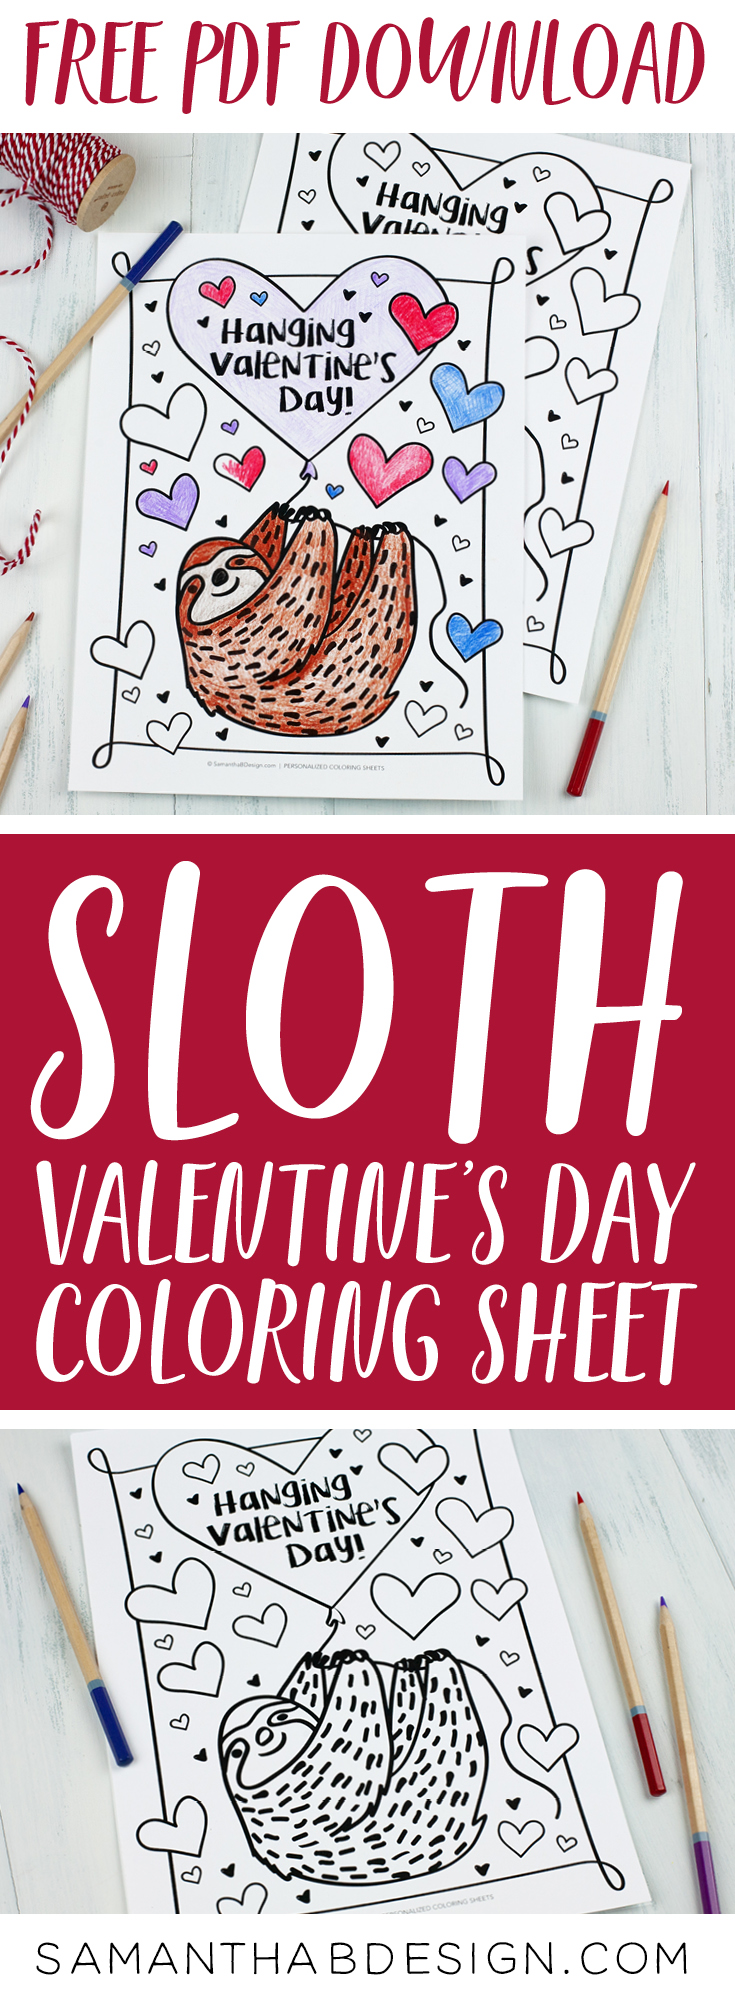 Sloth Valentine Coloring Sheet.jpg